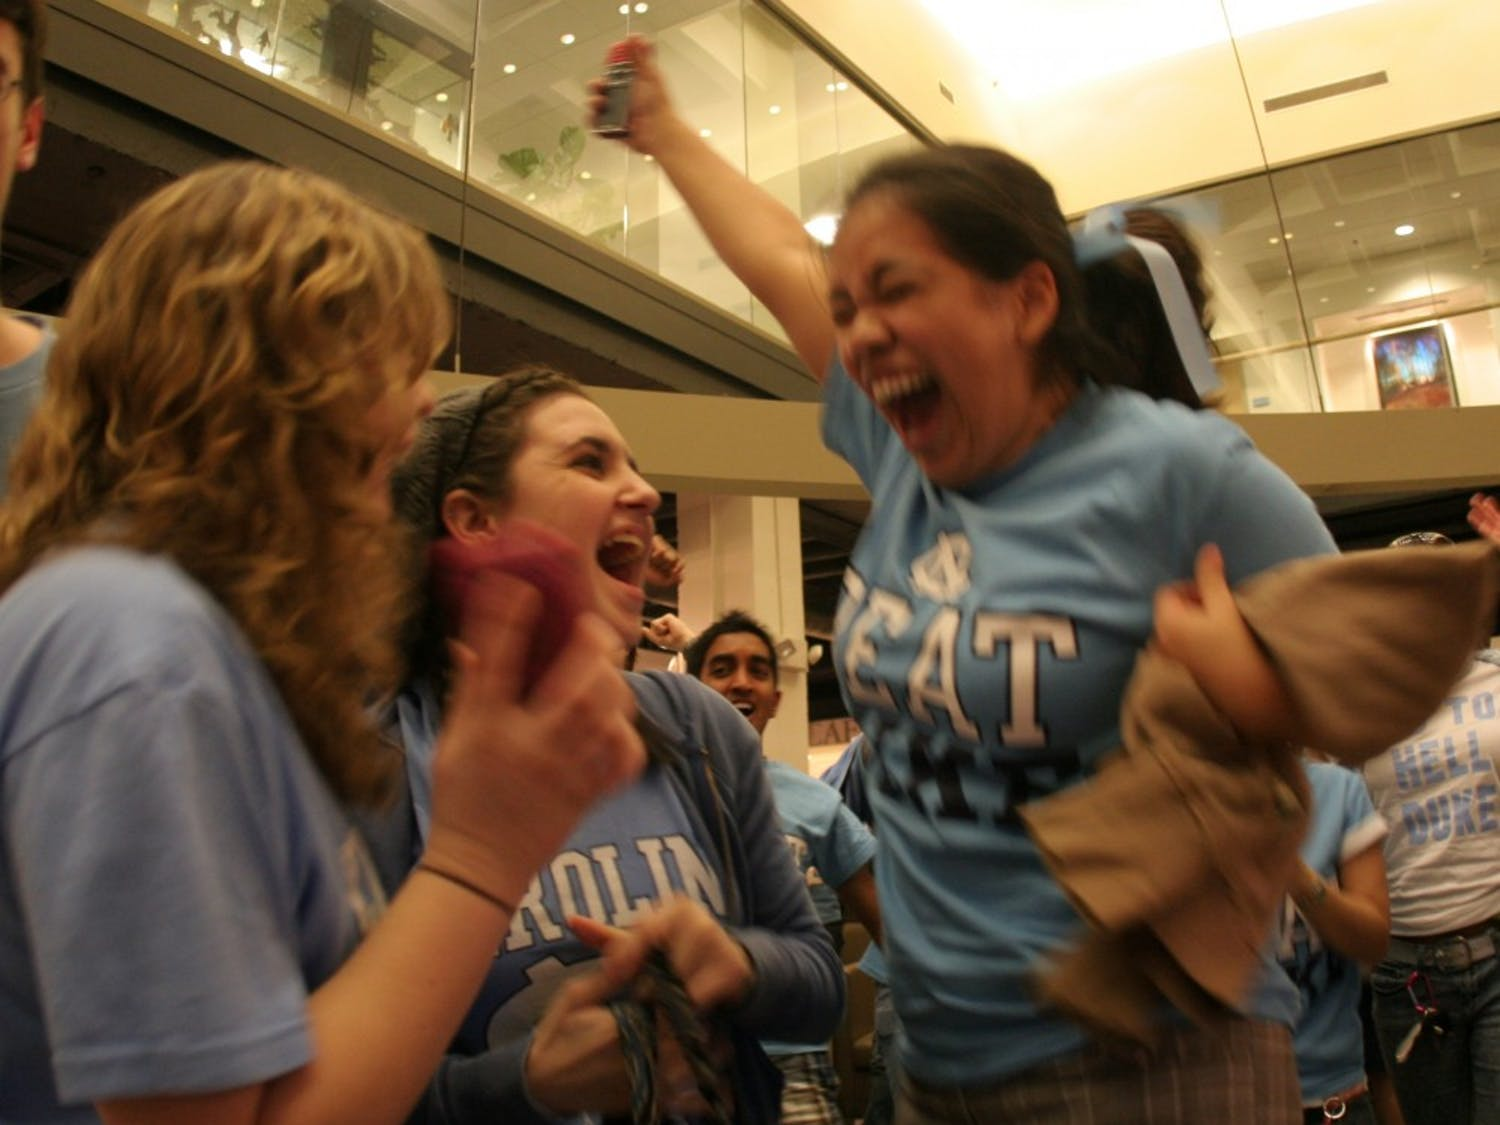 Maria Diaz reacts at the end of the Duke game on Wednesday night. Diaz was one of a crowd of students who cheered on the Heels in the Union lobby.